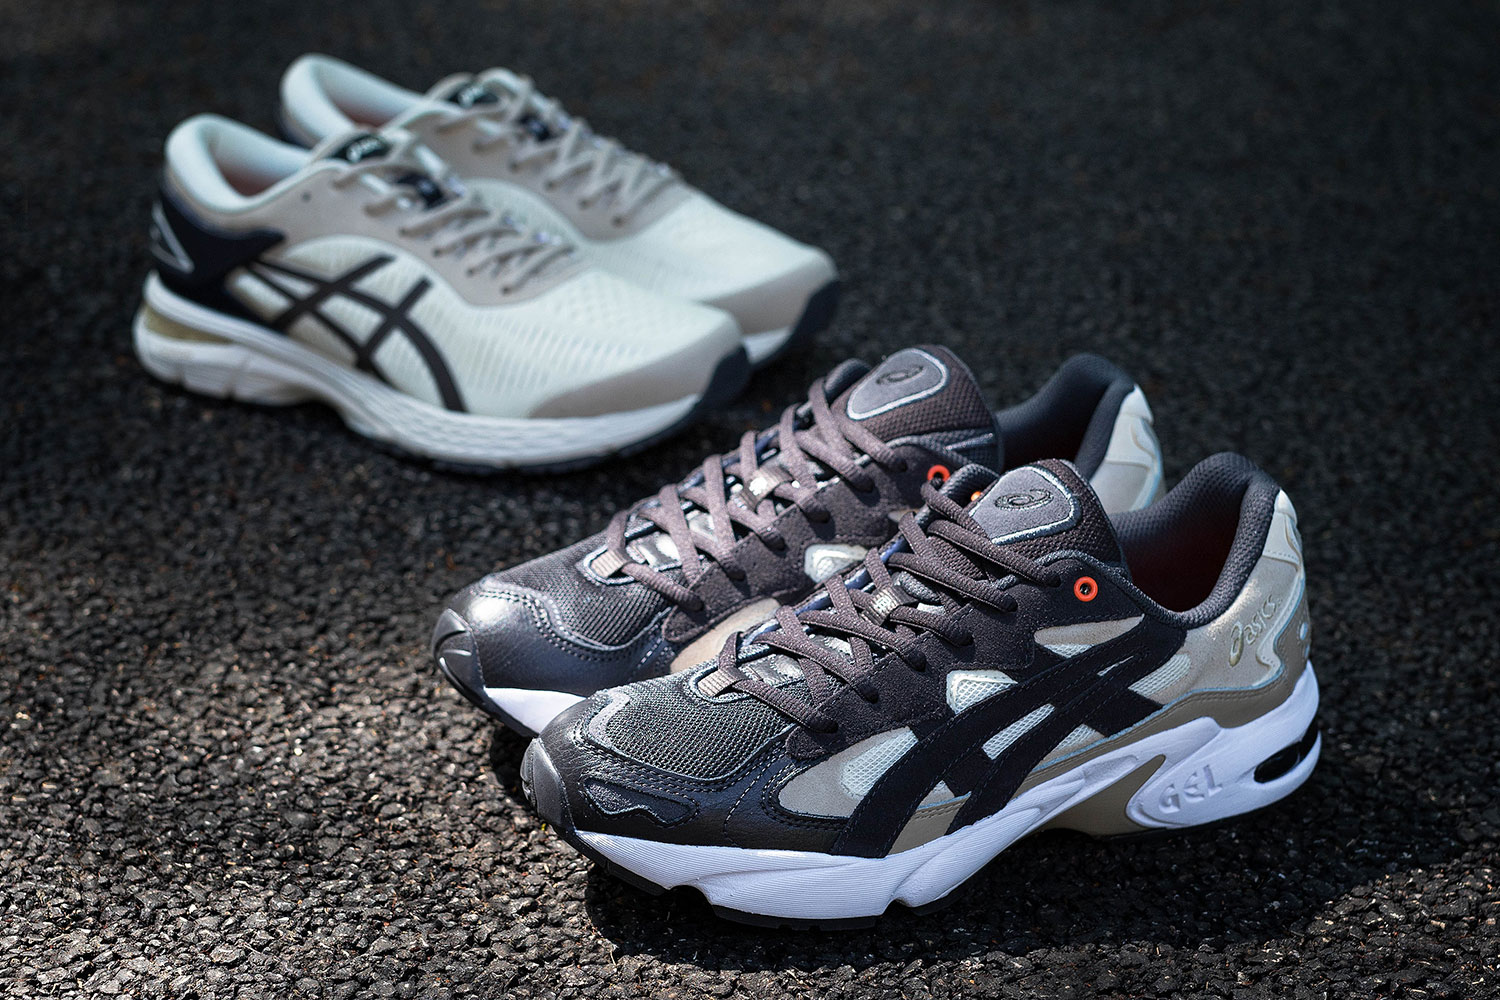 ASICSTIGER X Reigning Champ